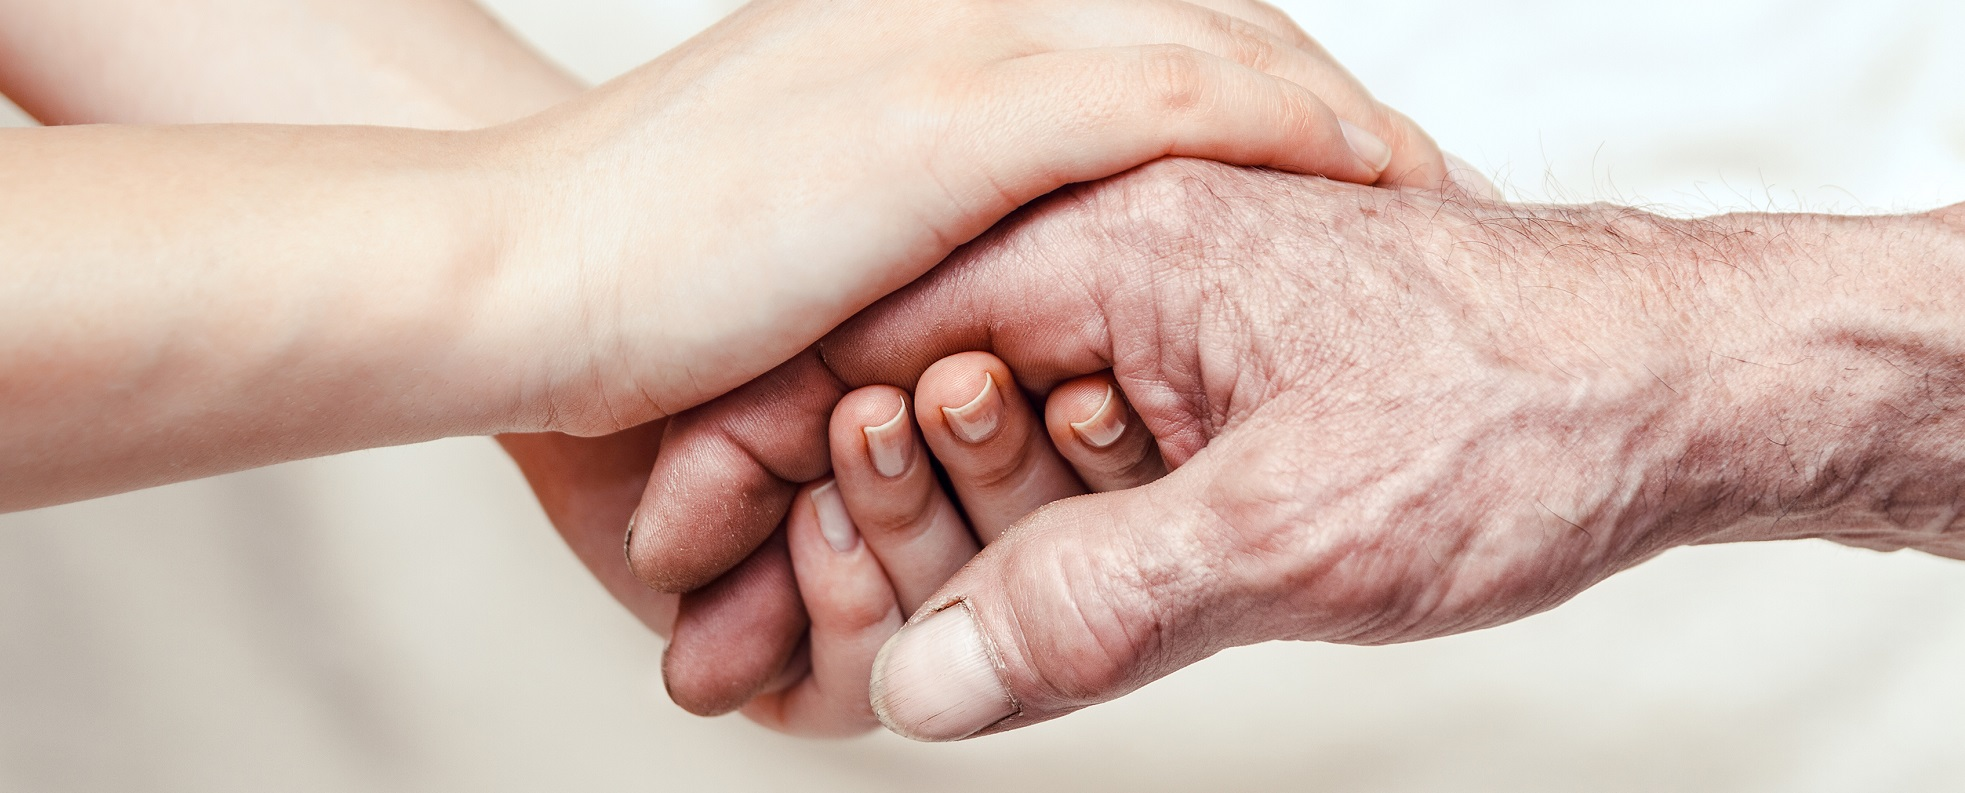 windows on theology course addresses end of life care with